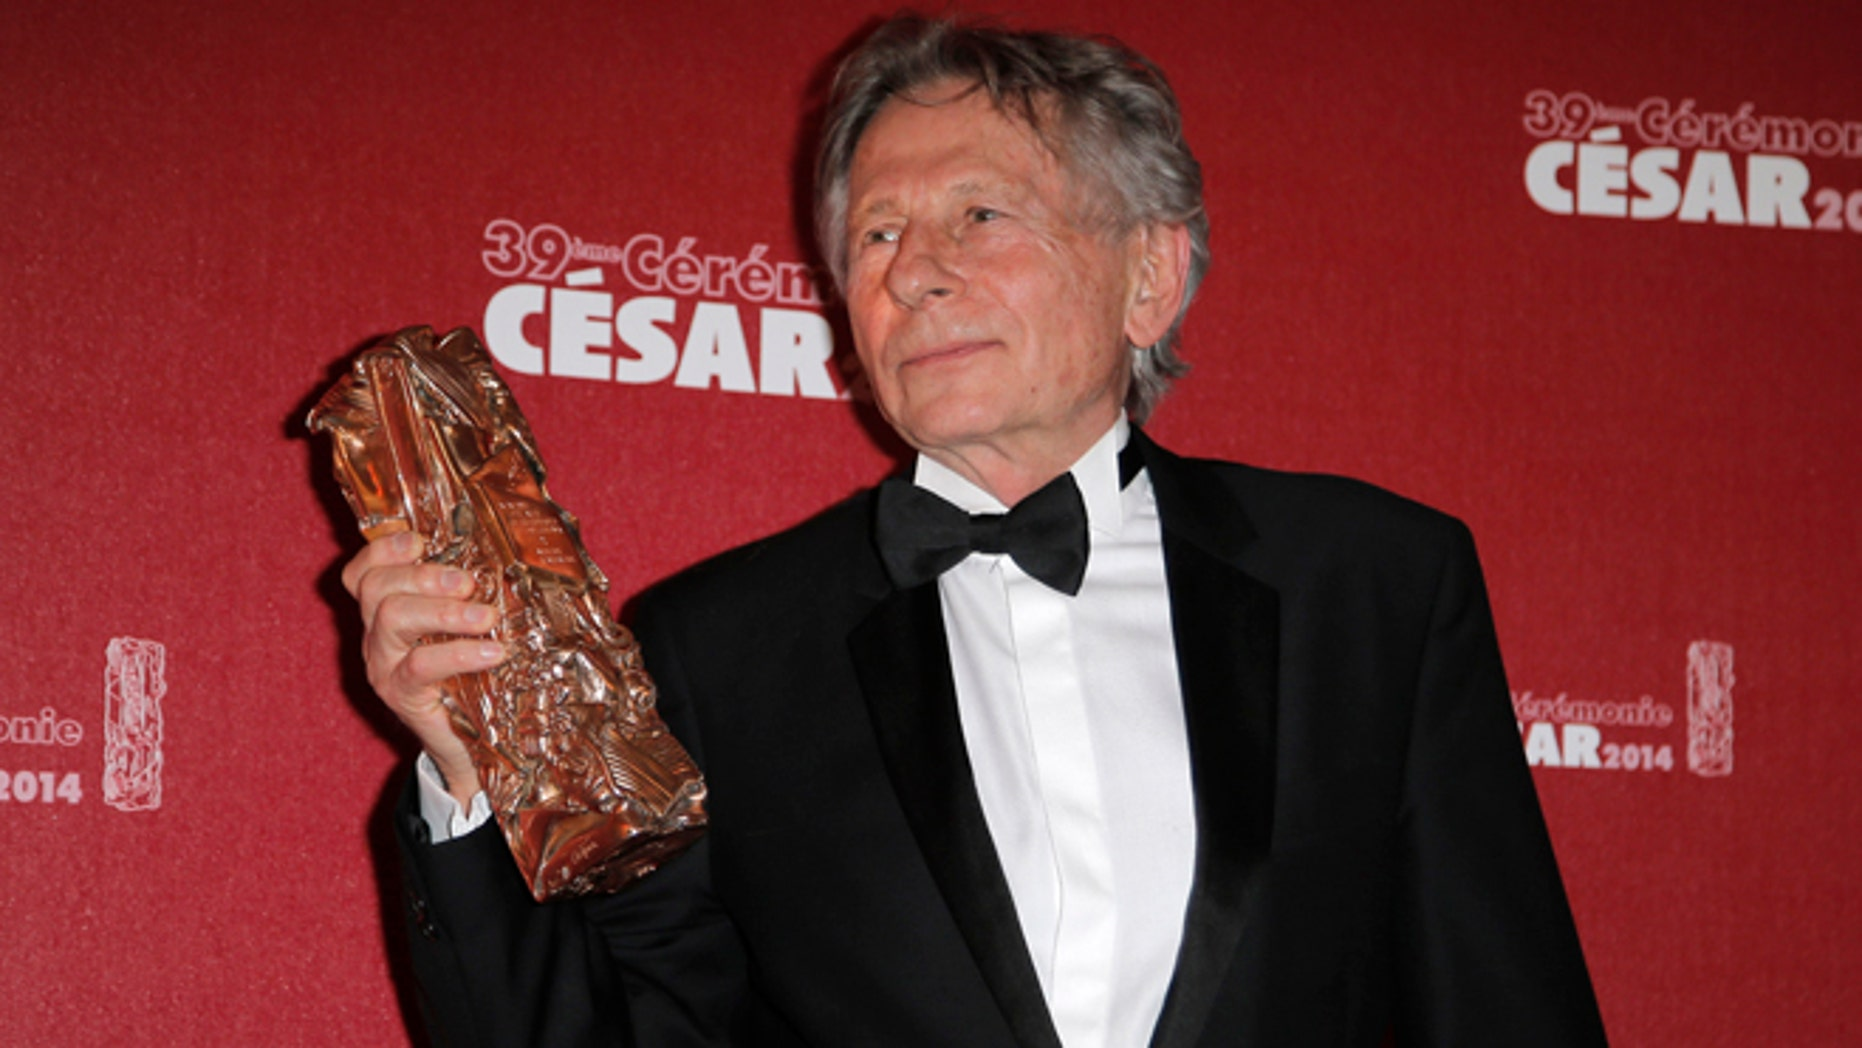 Feb. 28, 2014: Polish-French film director Roman Polanski holds his best director award during the 39th French Cesar Awards Ceremony in Paris.